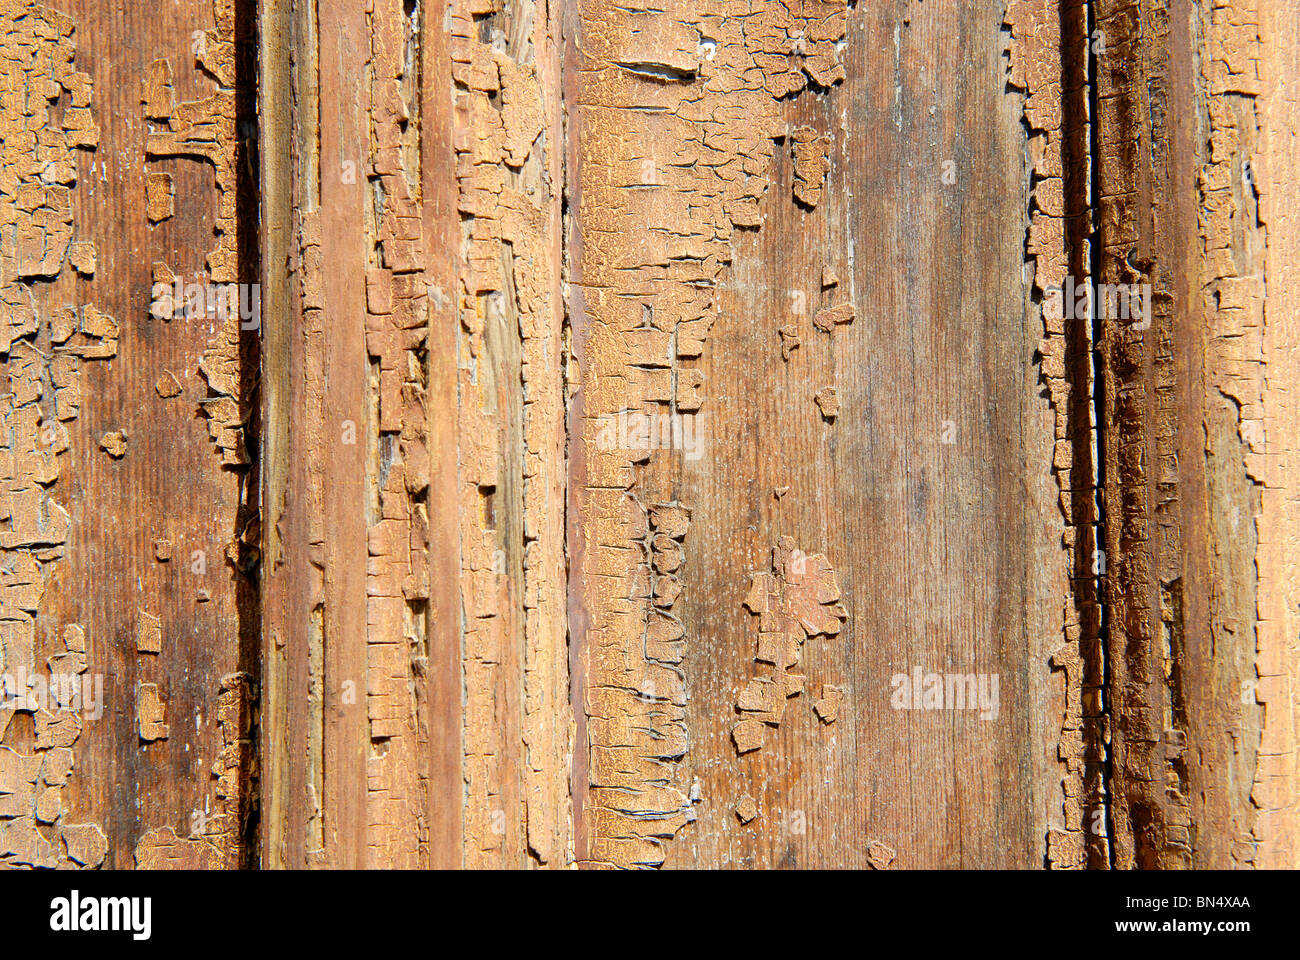 OLD WOODEN DOOR BACKGROUND - Stock Image